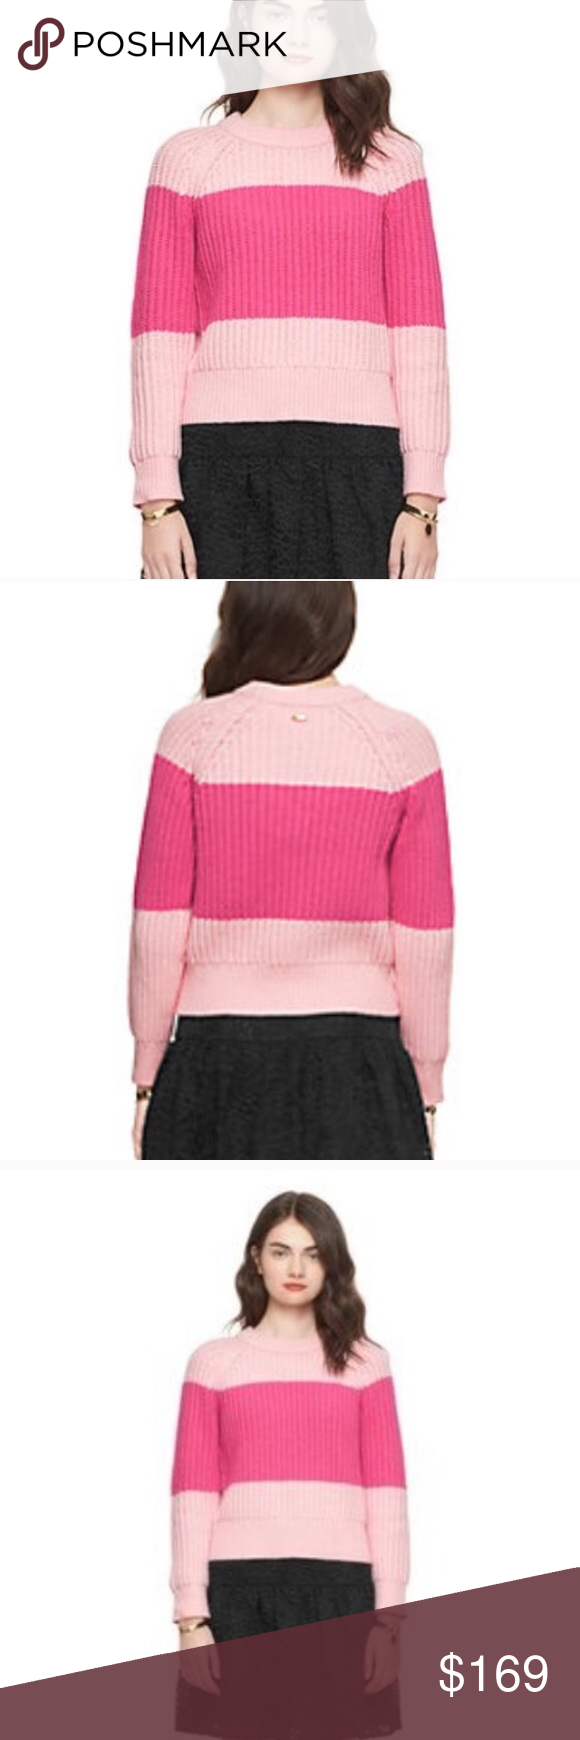 Kate spade knit striped pastry pink crew sweater nwt | Pink ...